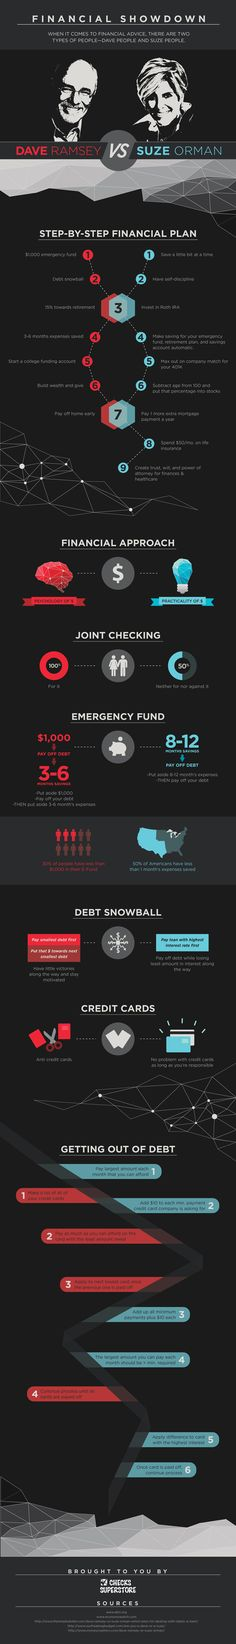 Thanks to @ChecksSuperstore for using our post to help make this infographic comparing the financial experts, Suze Orman and Dave Ramsey.